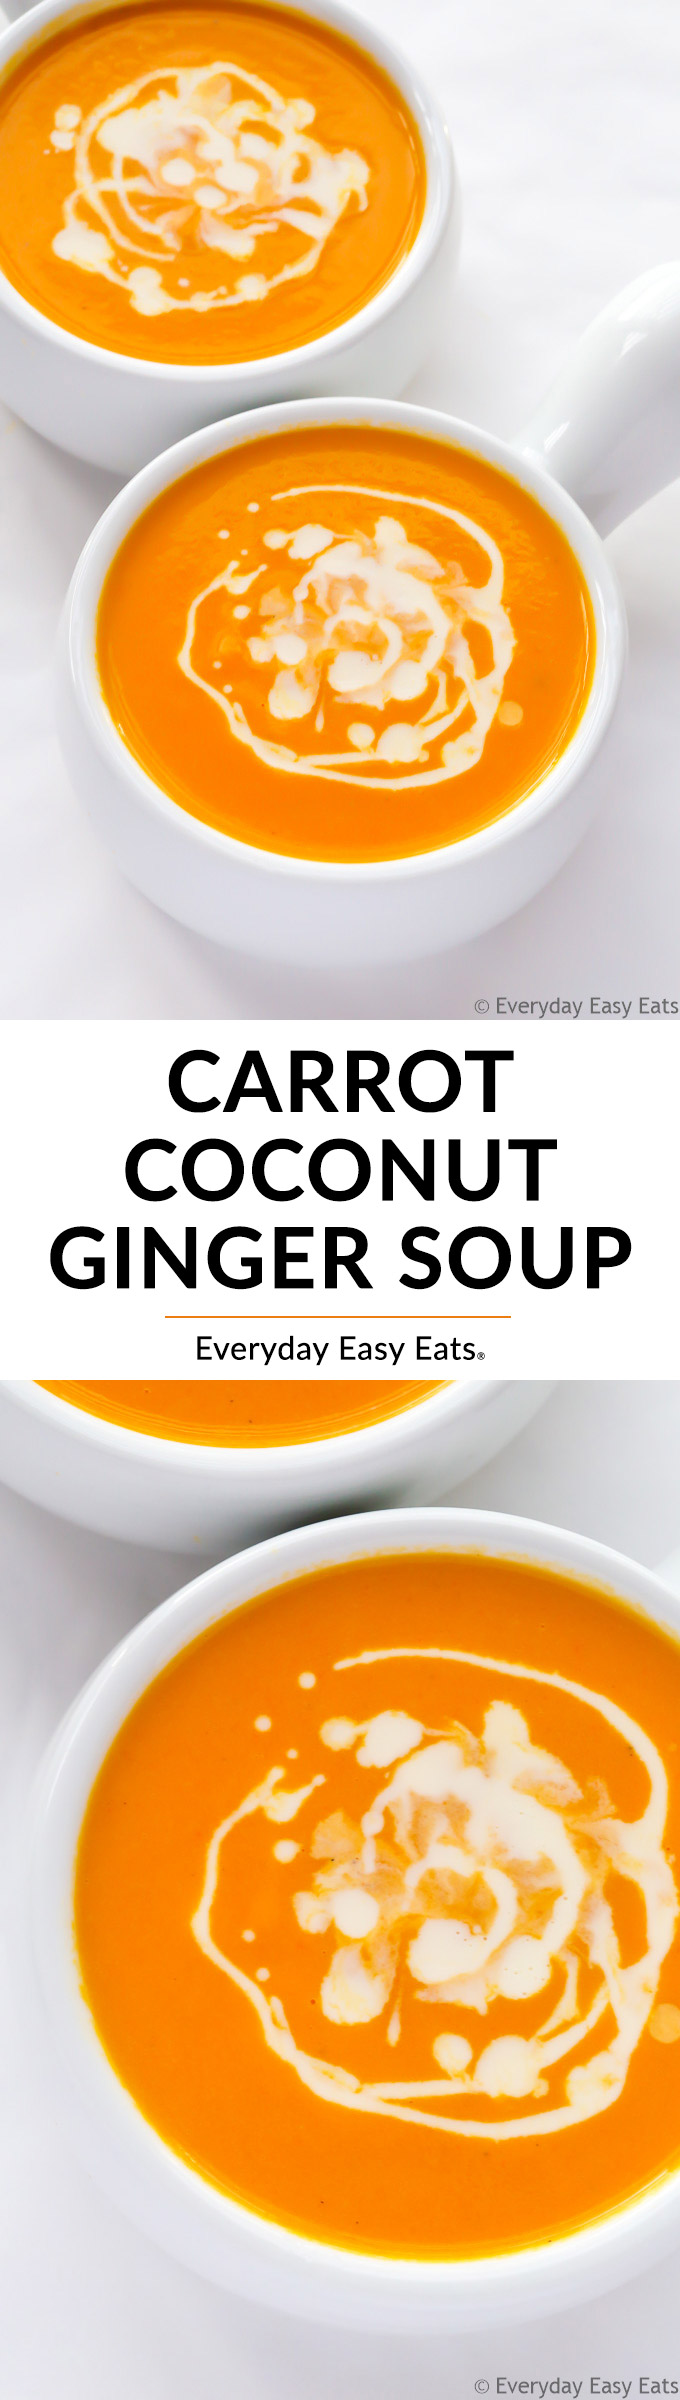 Carrot Ginger Coconut Soup - This easy & healthy soup recipe is vegan, gluten-free, dairy-free and paleo. Perfect for lunch or dinner!